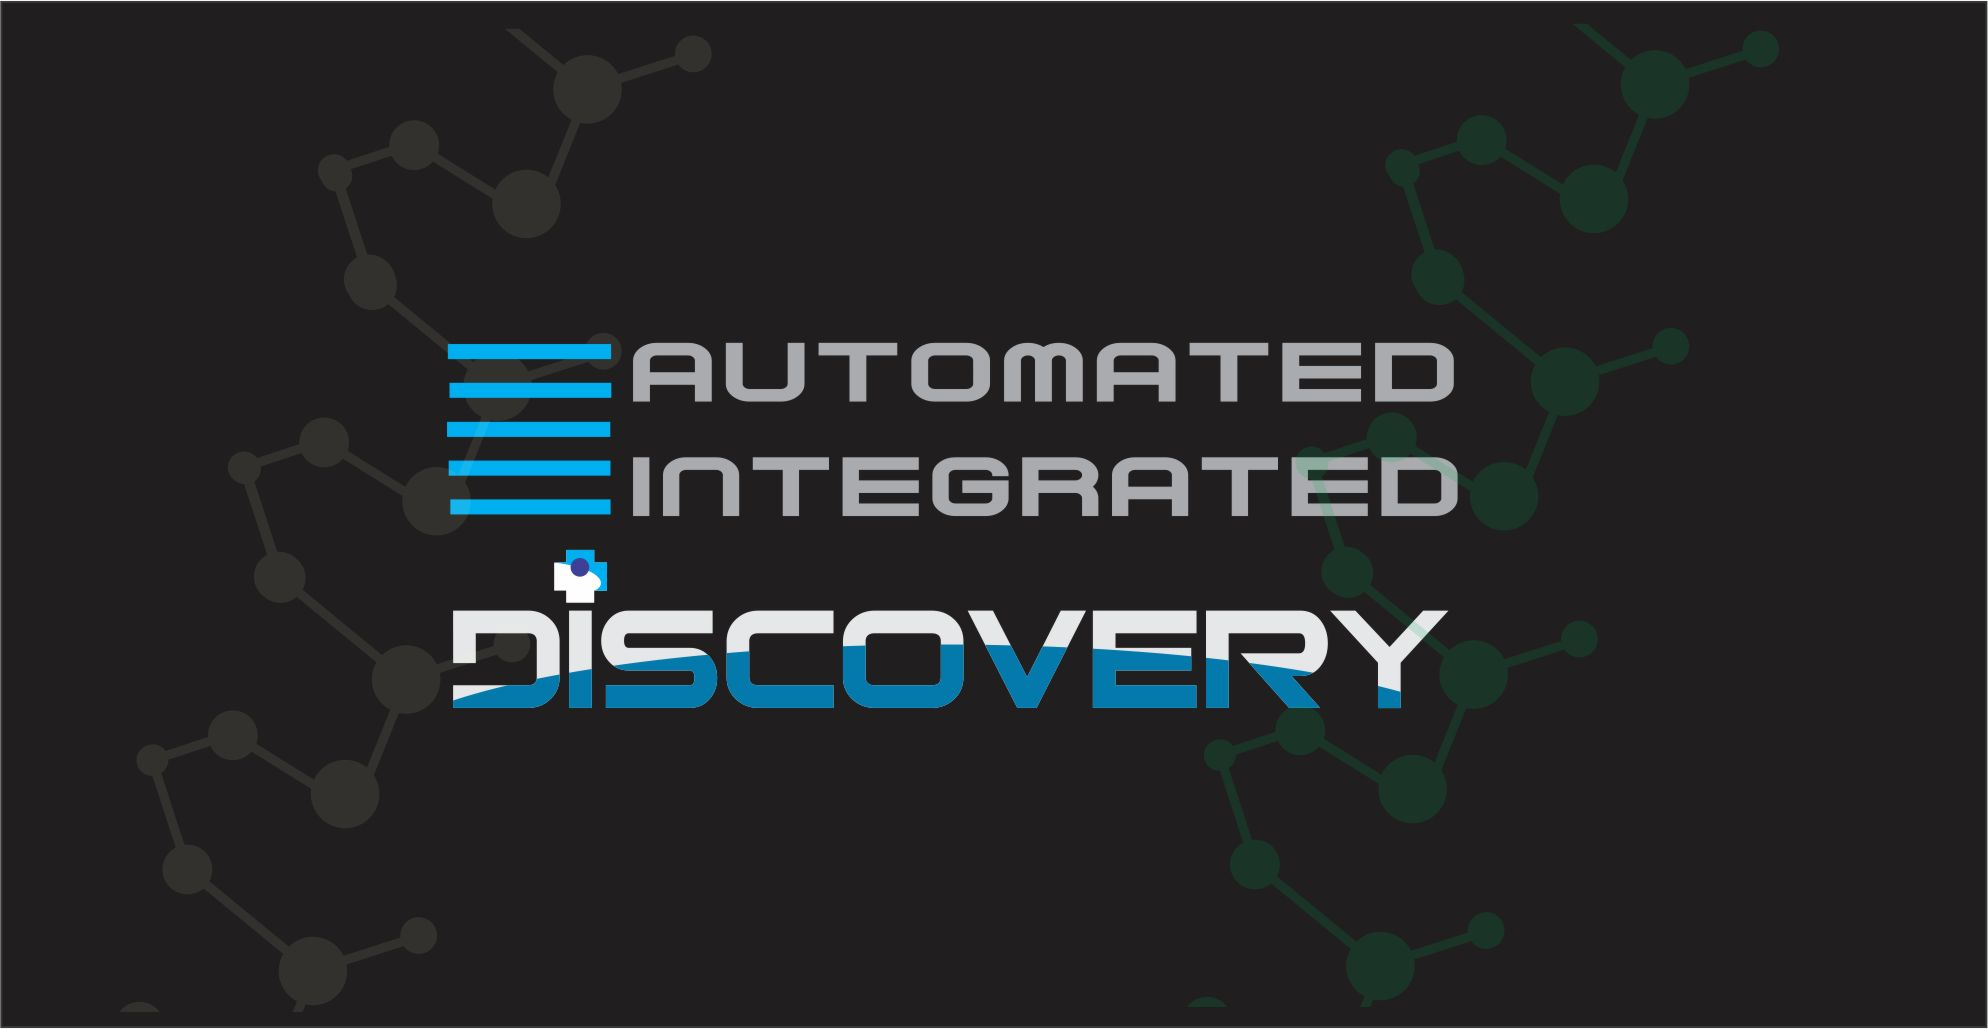 Logo Design by Nikola Kapunac - Entry No. 77 in the Logo Design Contest Automated Integrated Discovery  Logo Design.